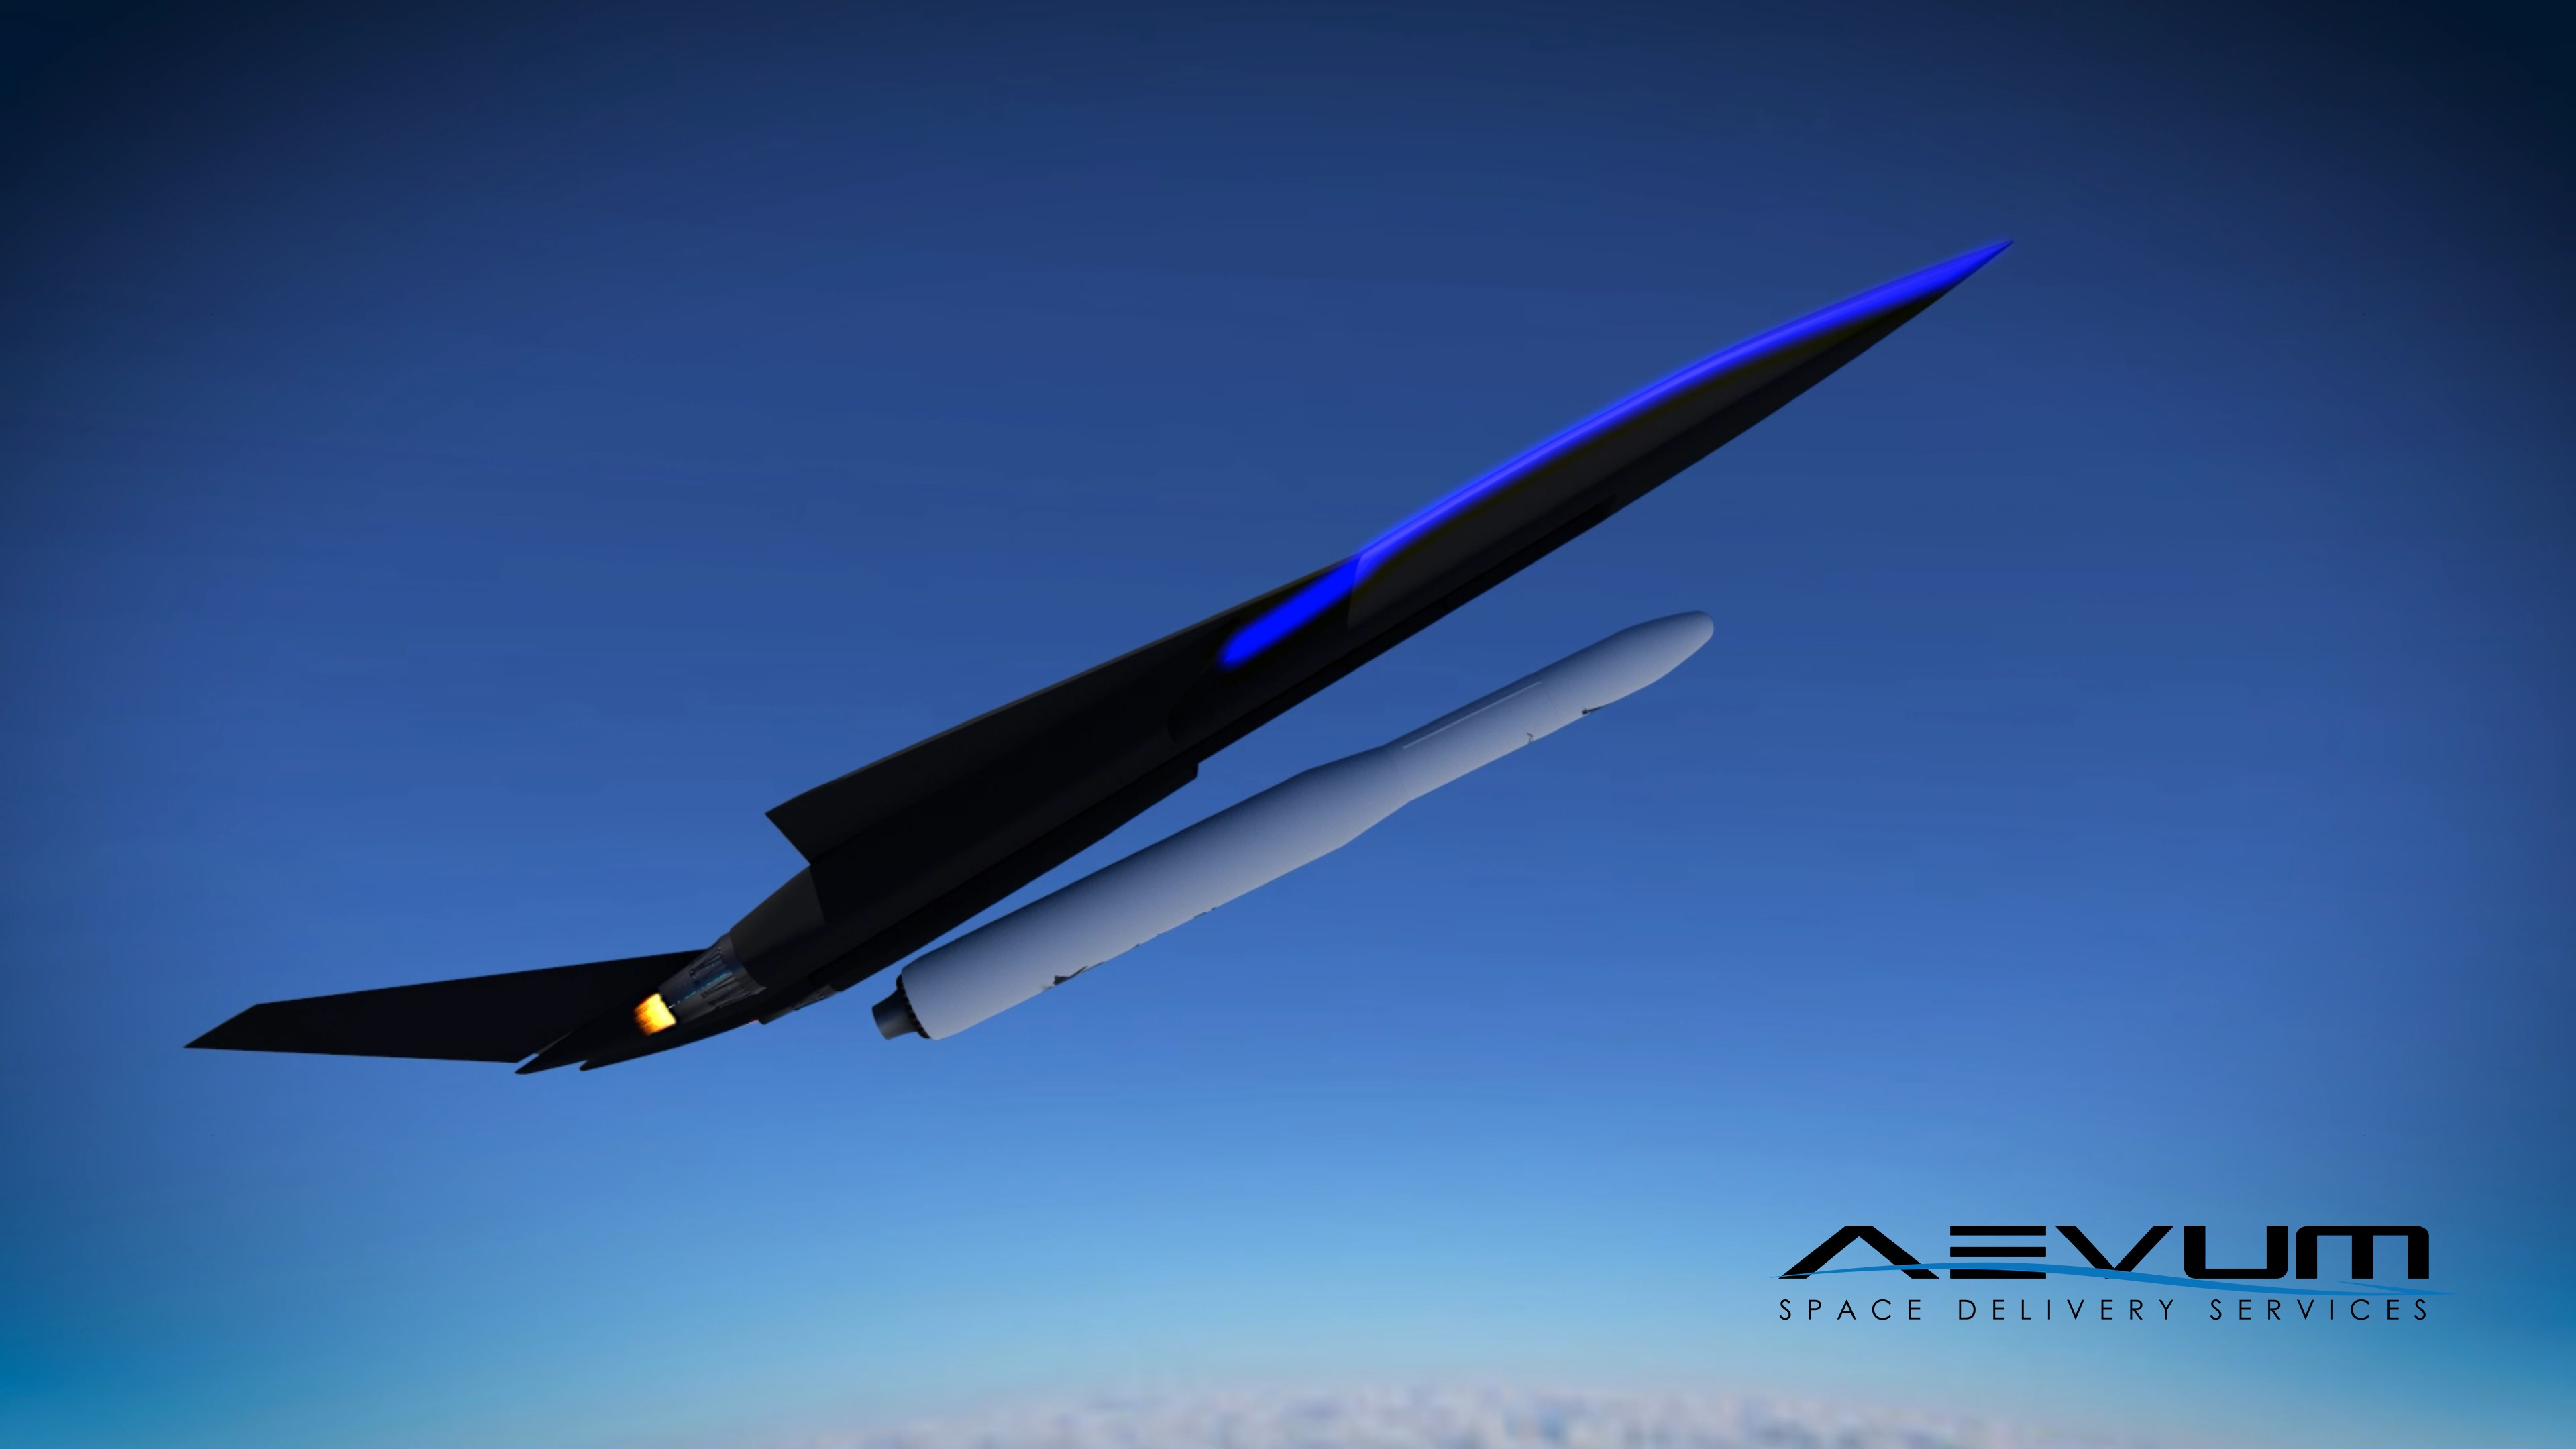 Aevum's New Rocket-Drone Airplane Duo Could Launch